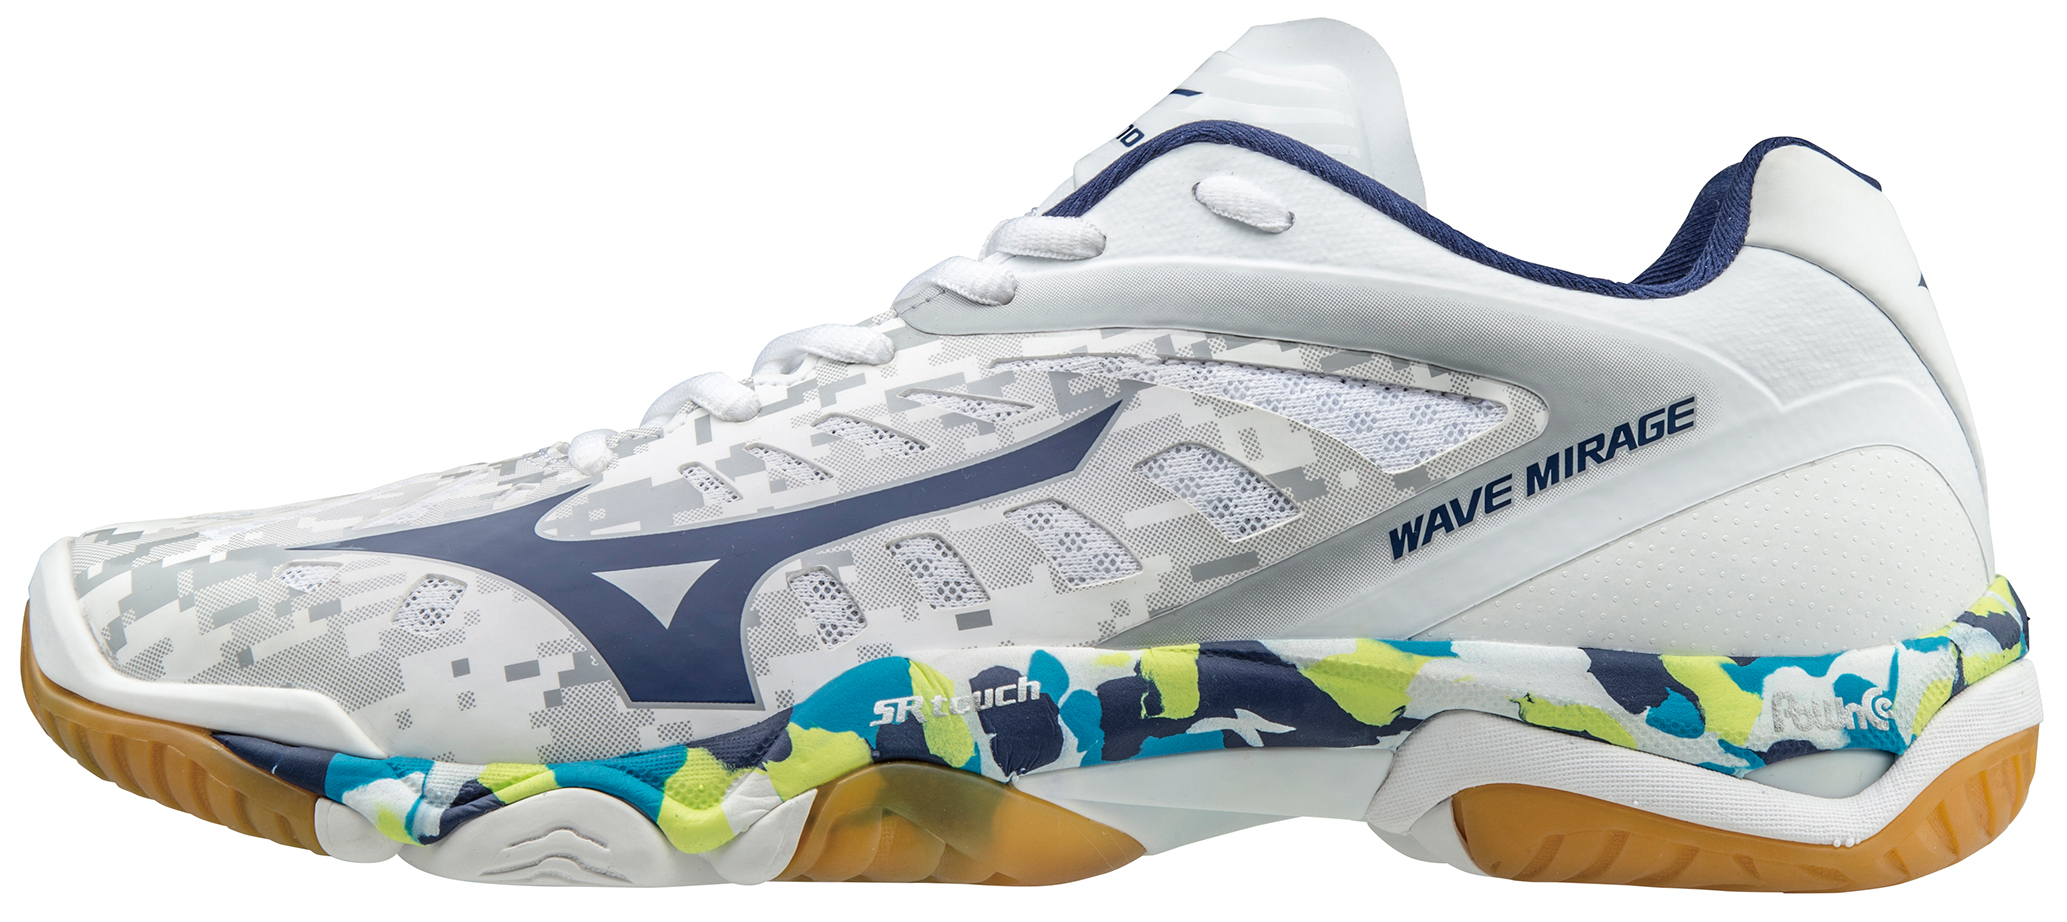 Mizuno Wave Mirage X1GA155014 EUR 40,5